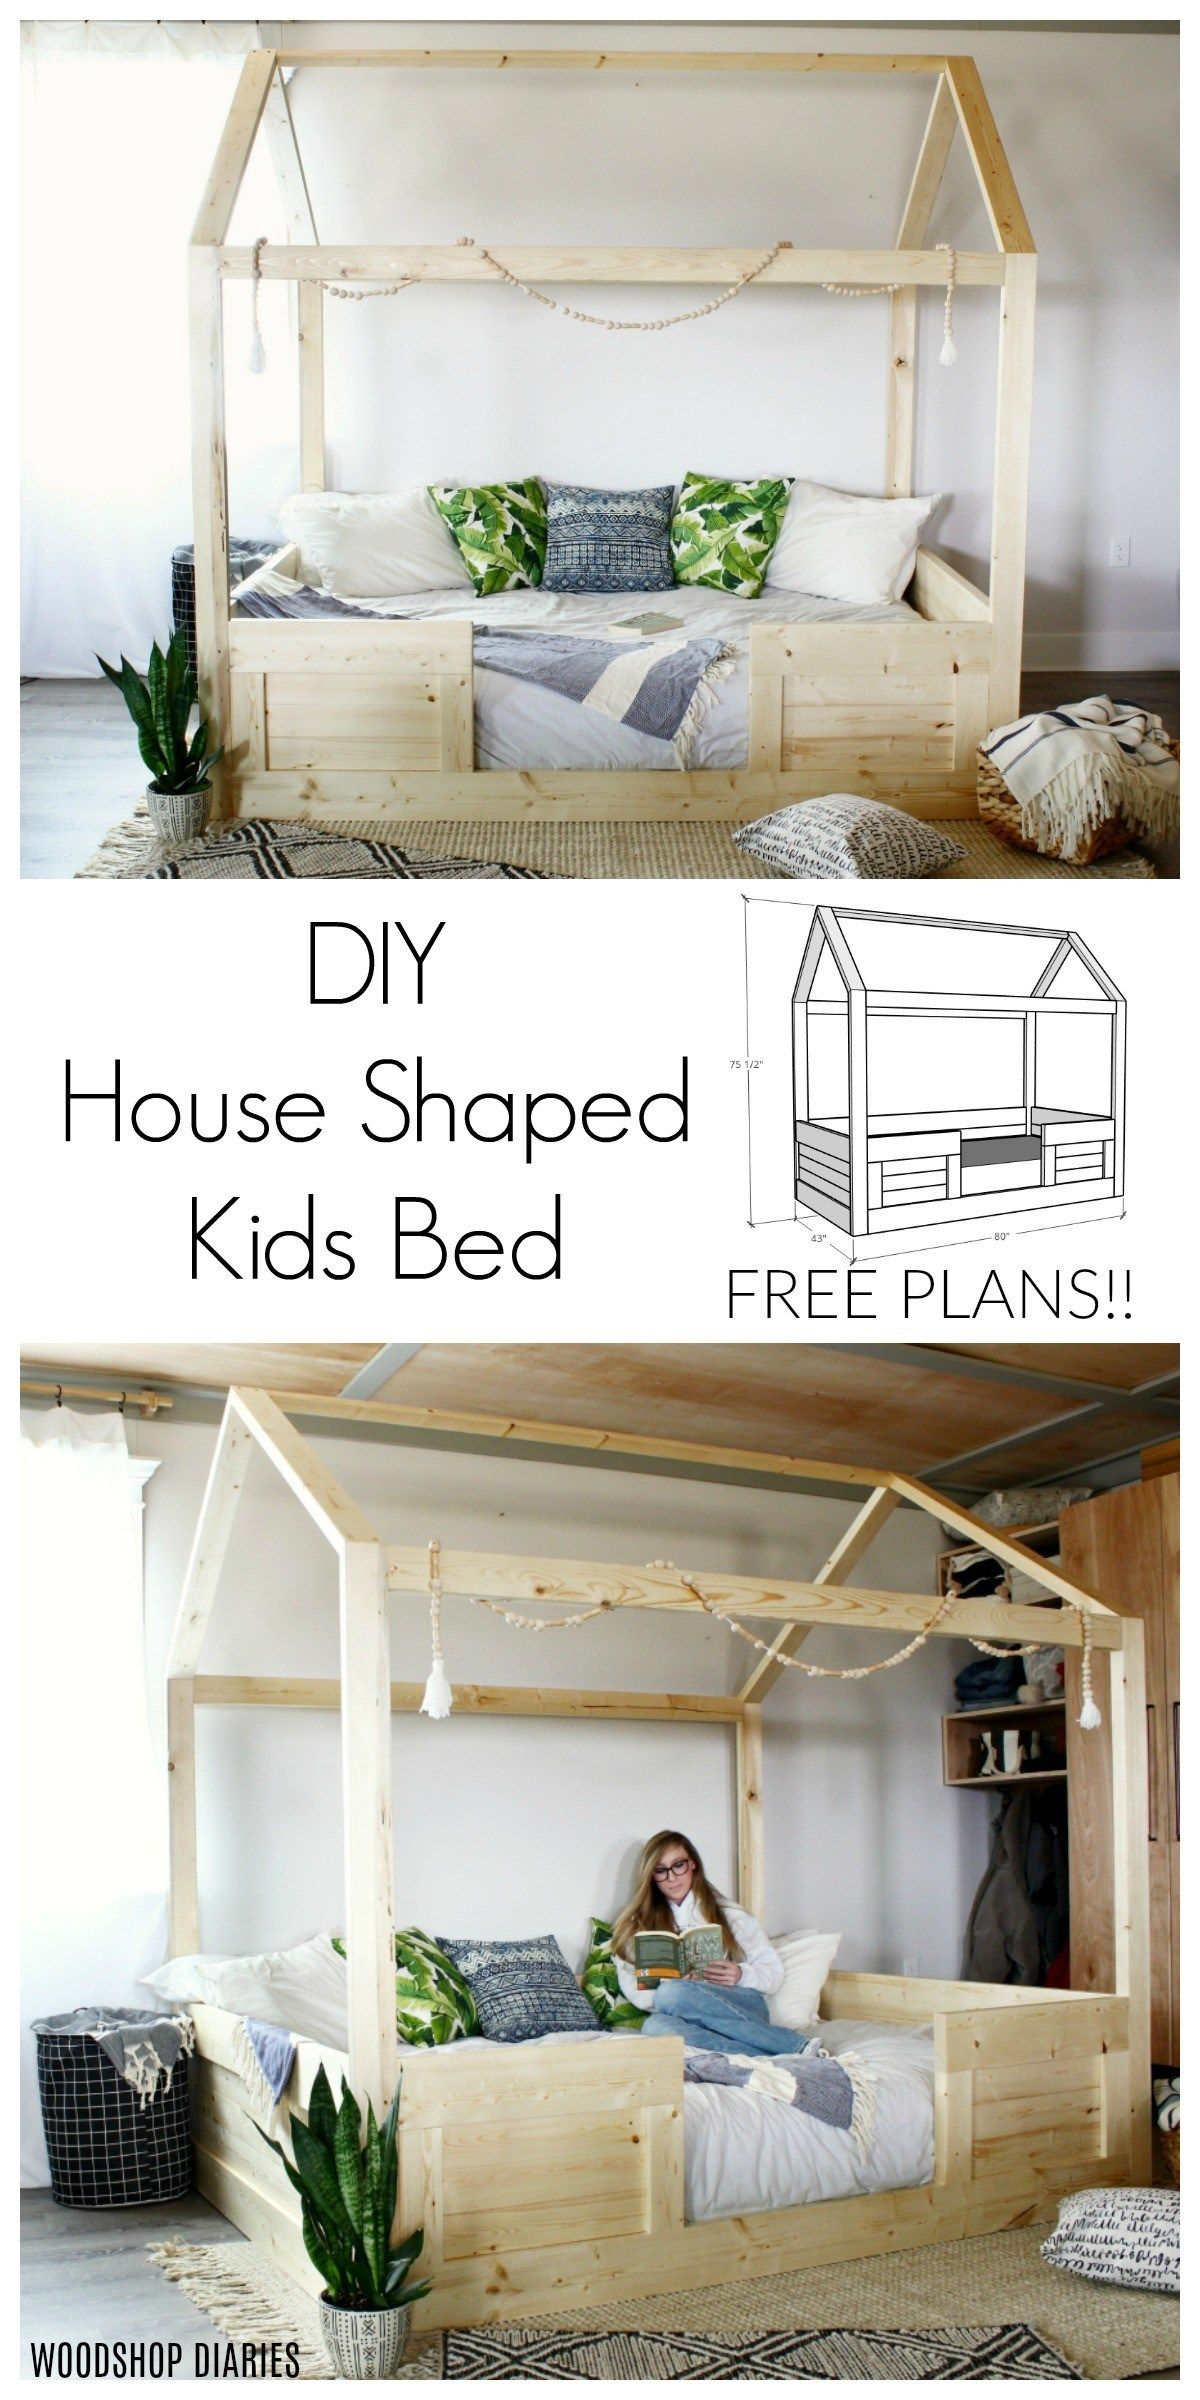 Diy Kids House Bed In 2020 House Beds For Kids House Beds Kids